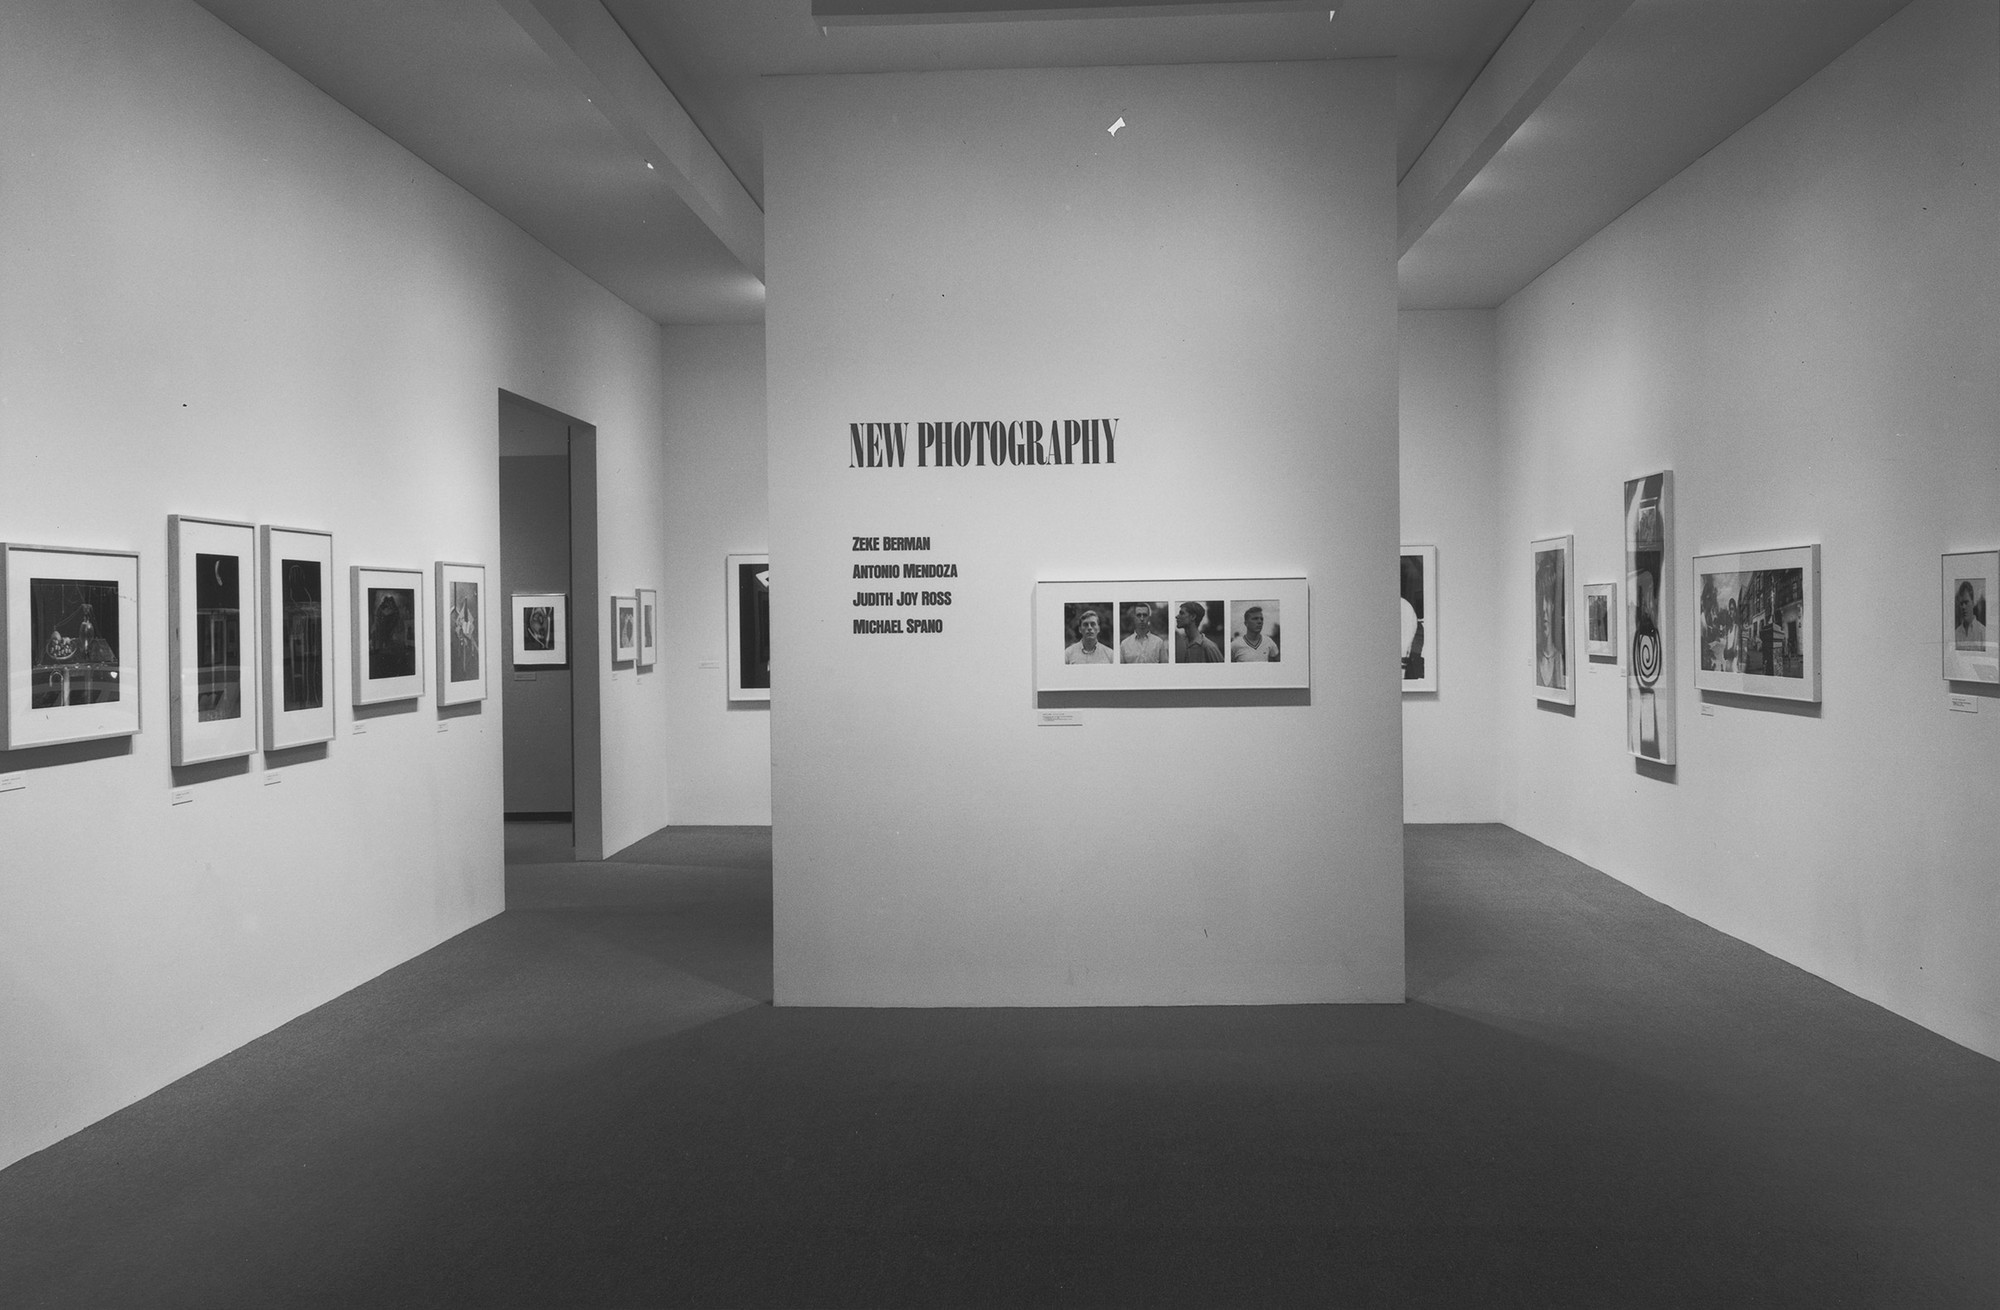 Exhibition Booth Installation : New photography moma